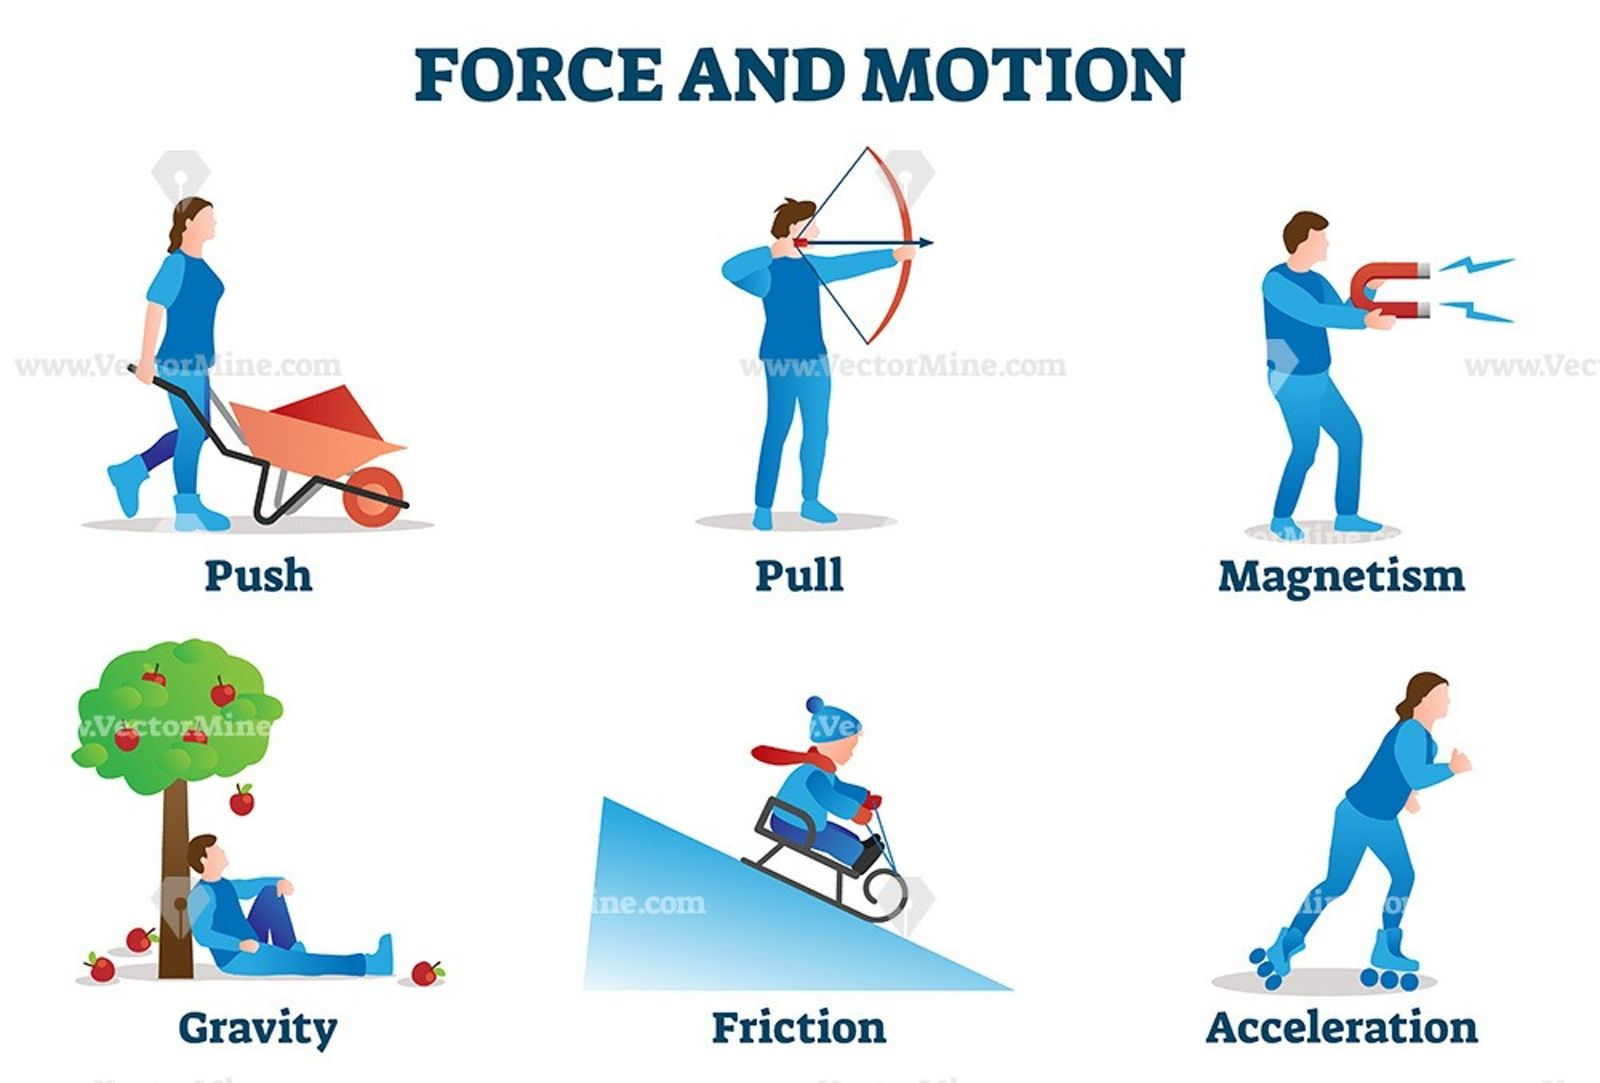 medium resolution of Force and motion vector illustration   Force and motion